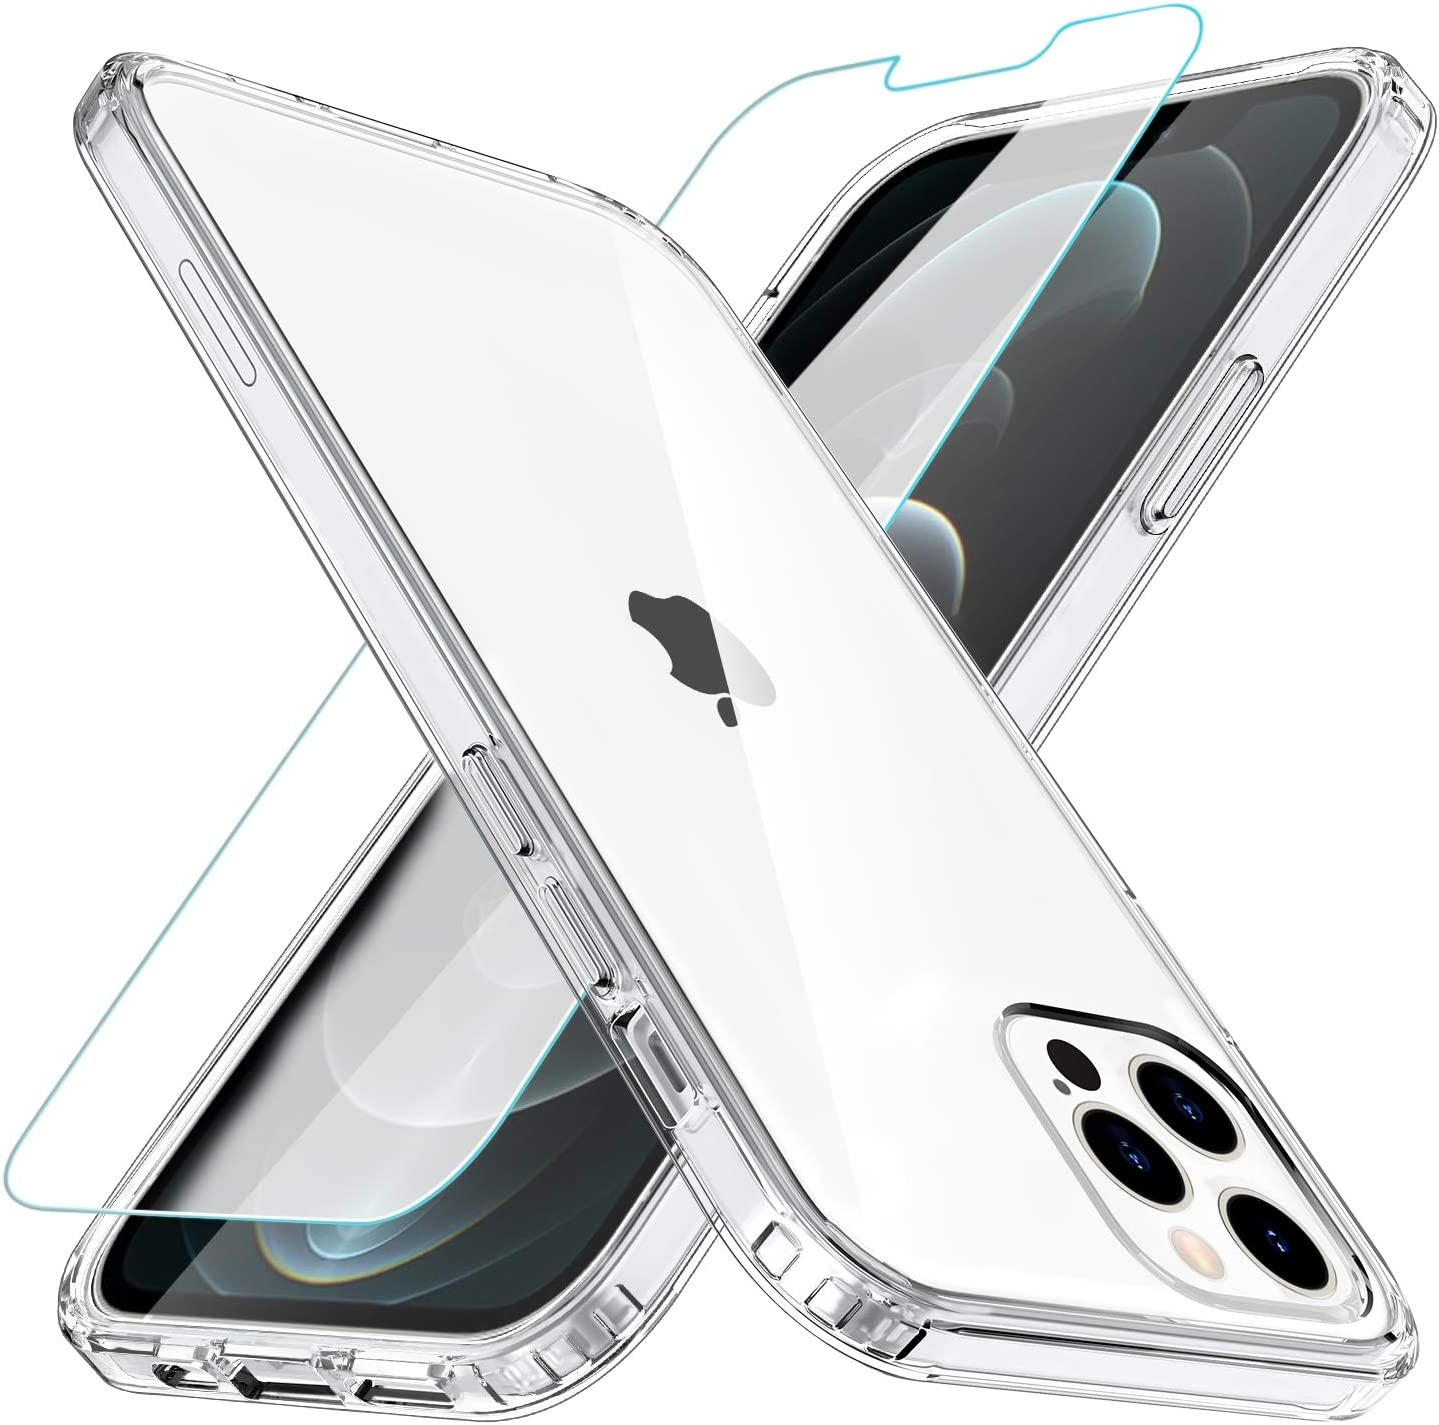 iPhone 12/ iPhone 12 Pro Cover WAS £9.99 NOW £4.99 w/code GXWCI2X5 @ Amazon